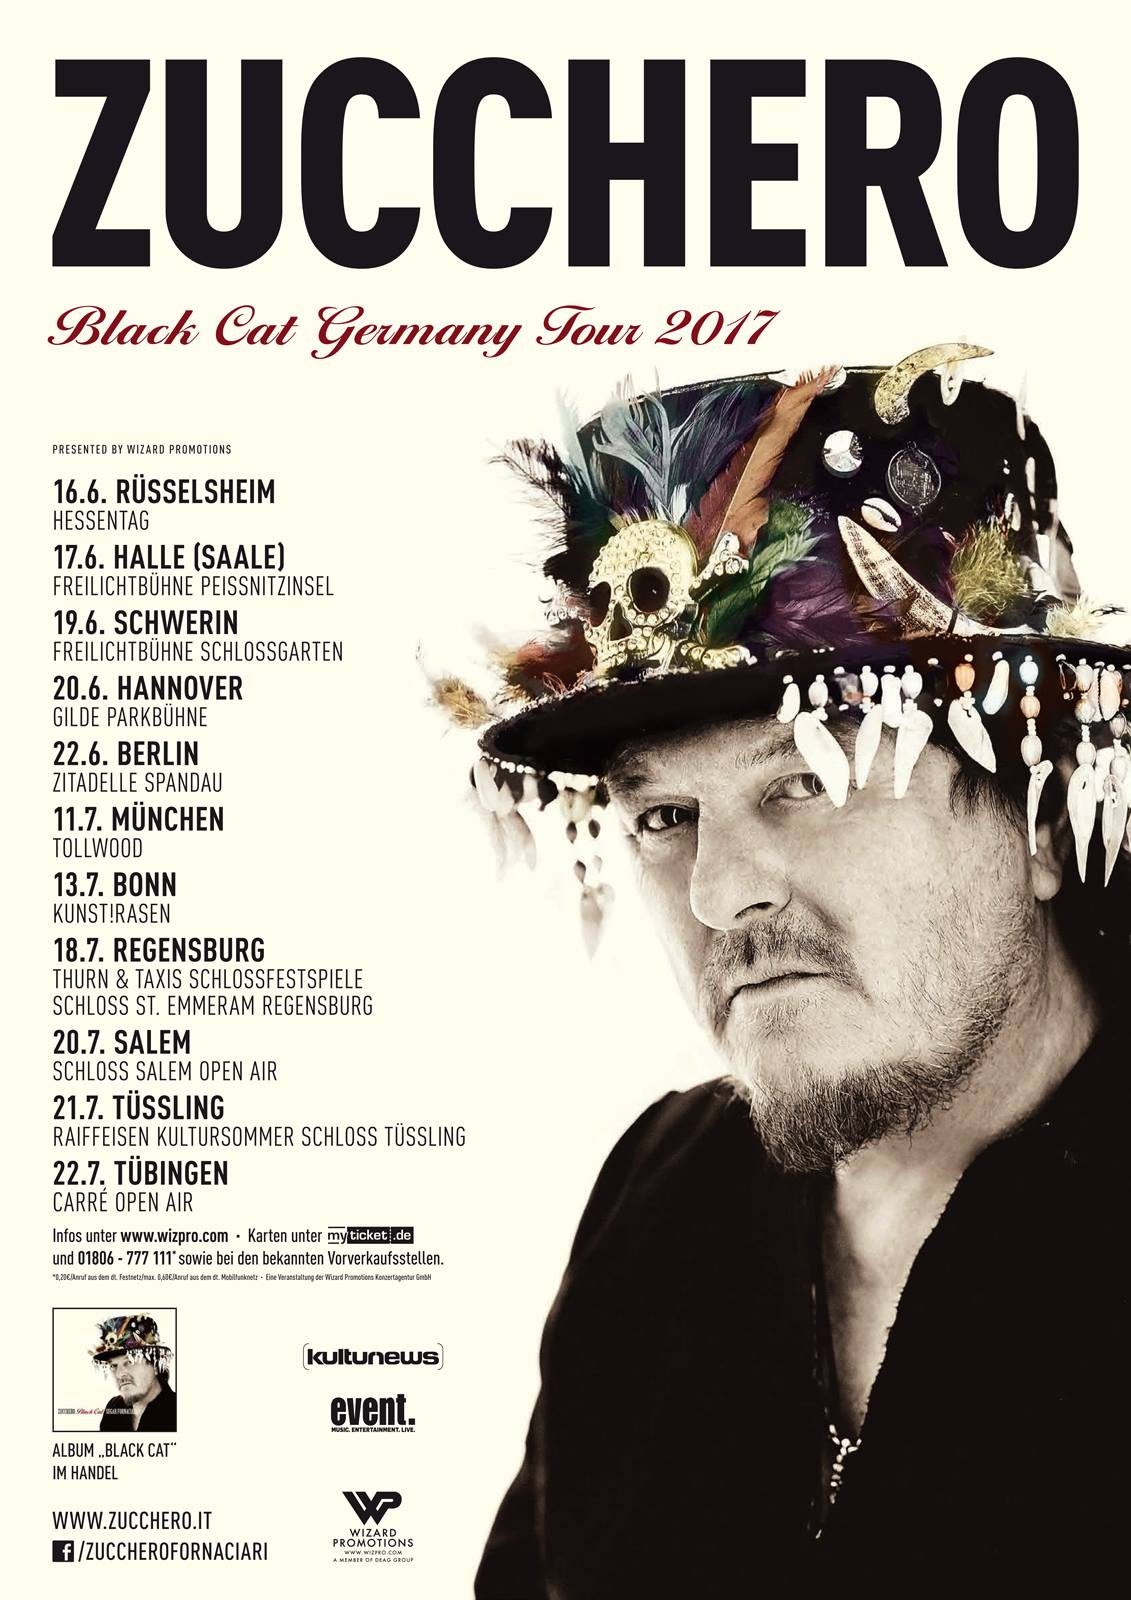 Zucchero Black Cat World Tour Germany   June